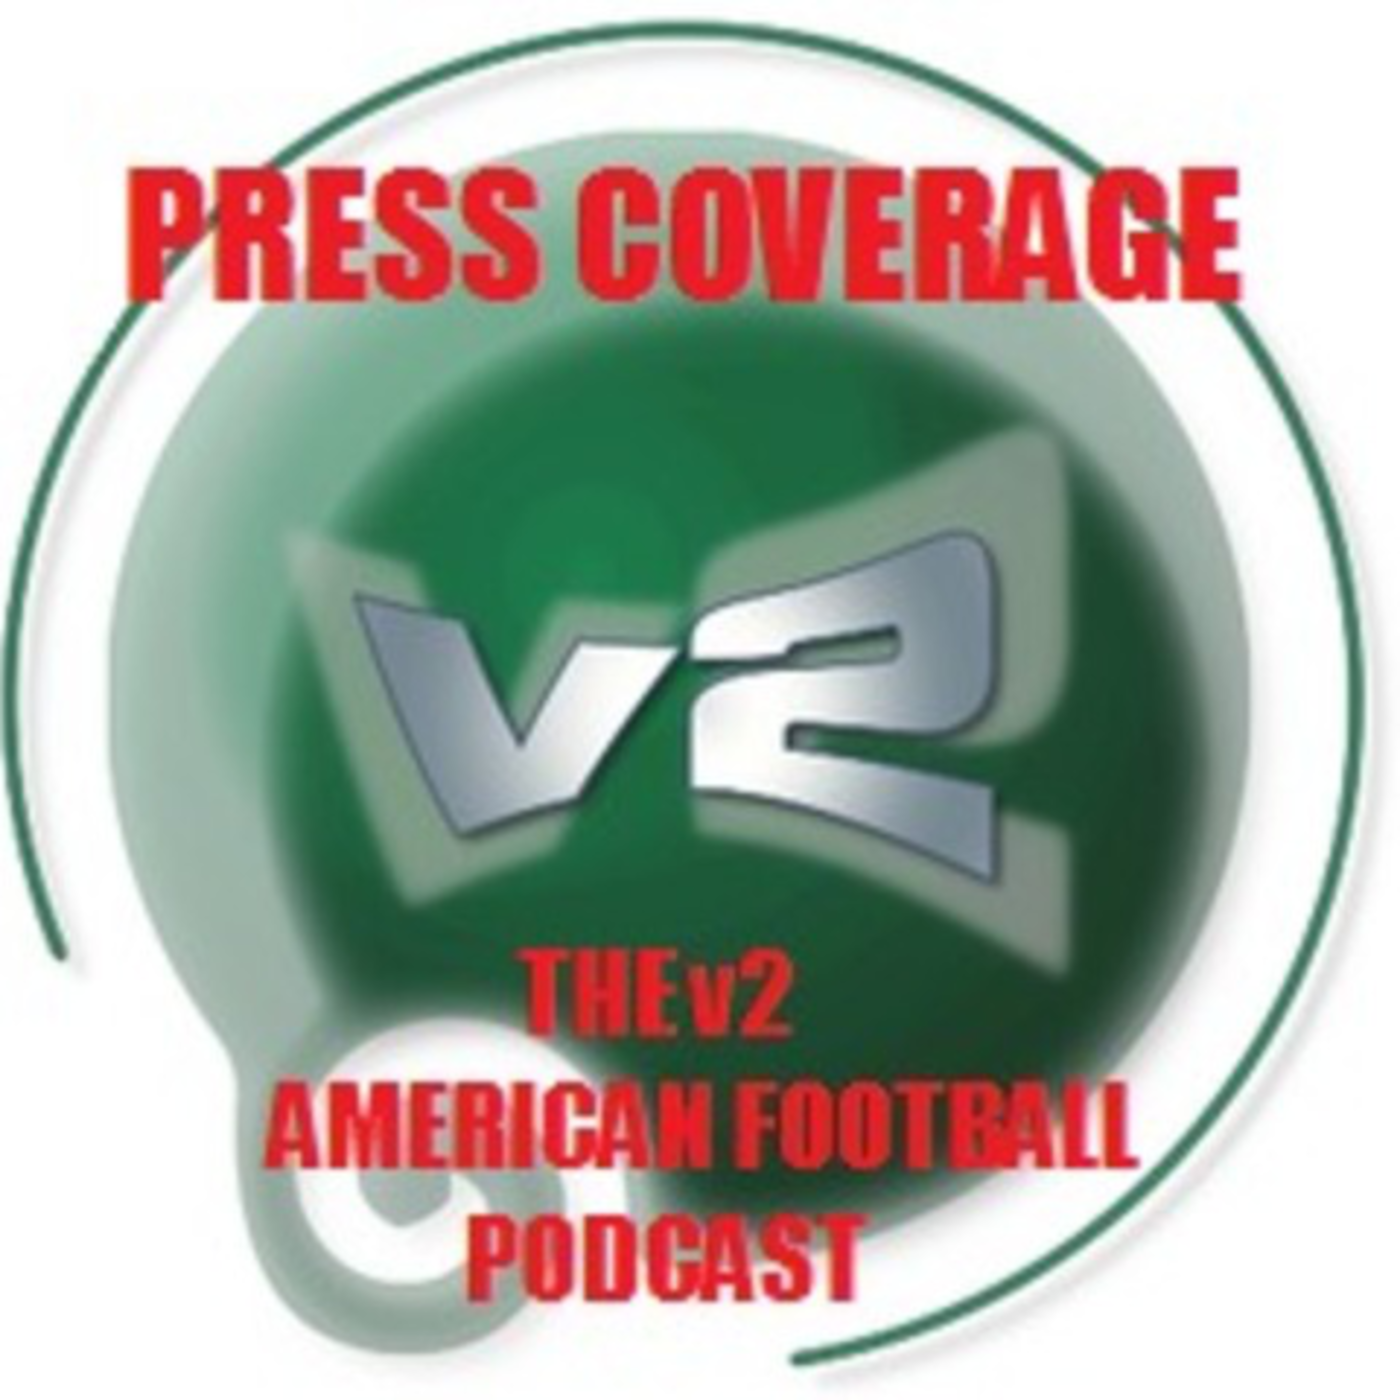 Press Coverage - v2 American Football Podcast